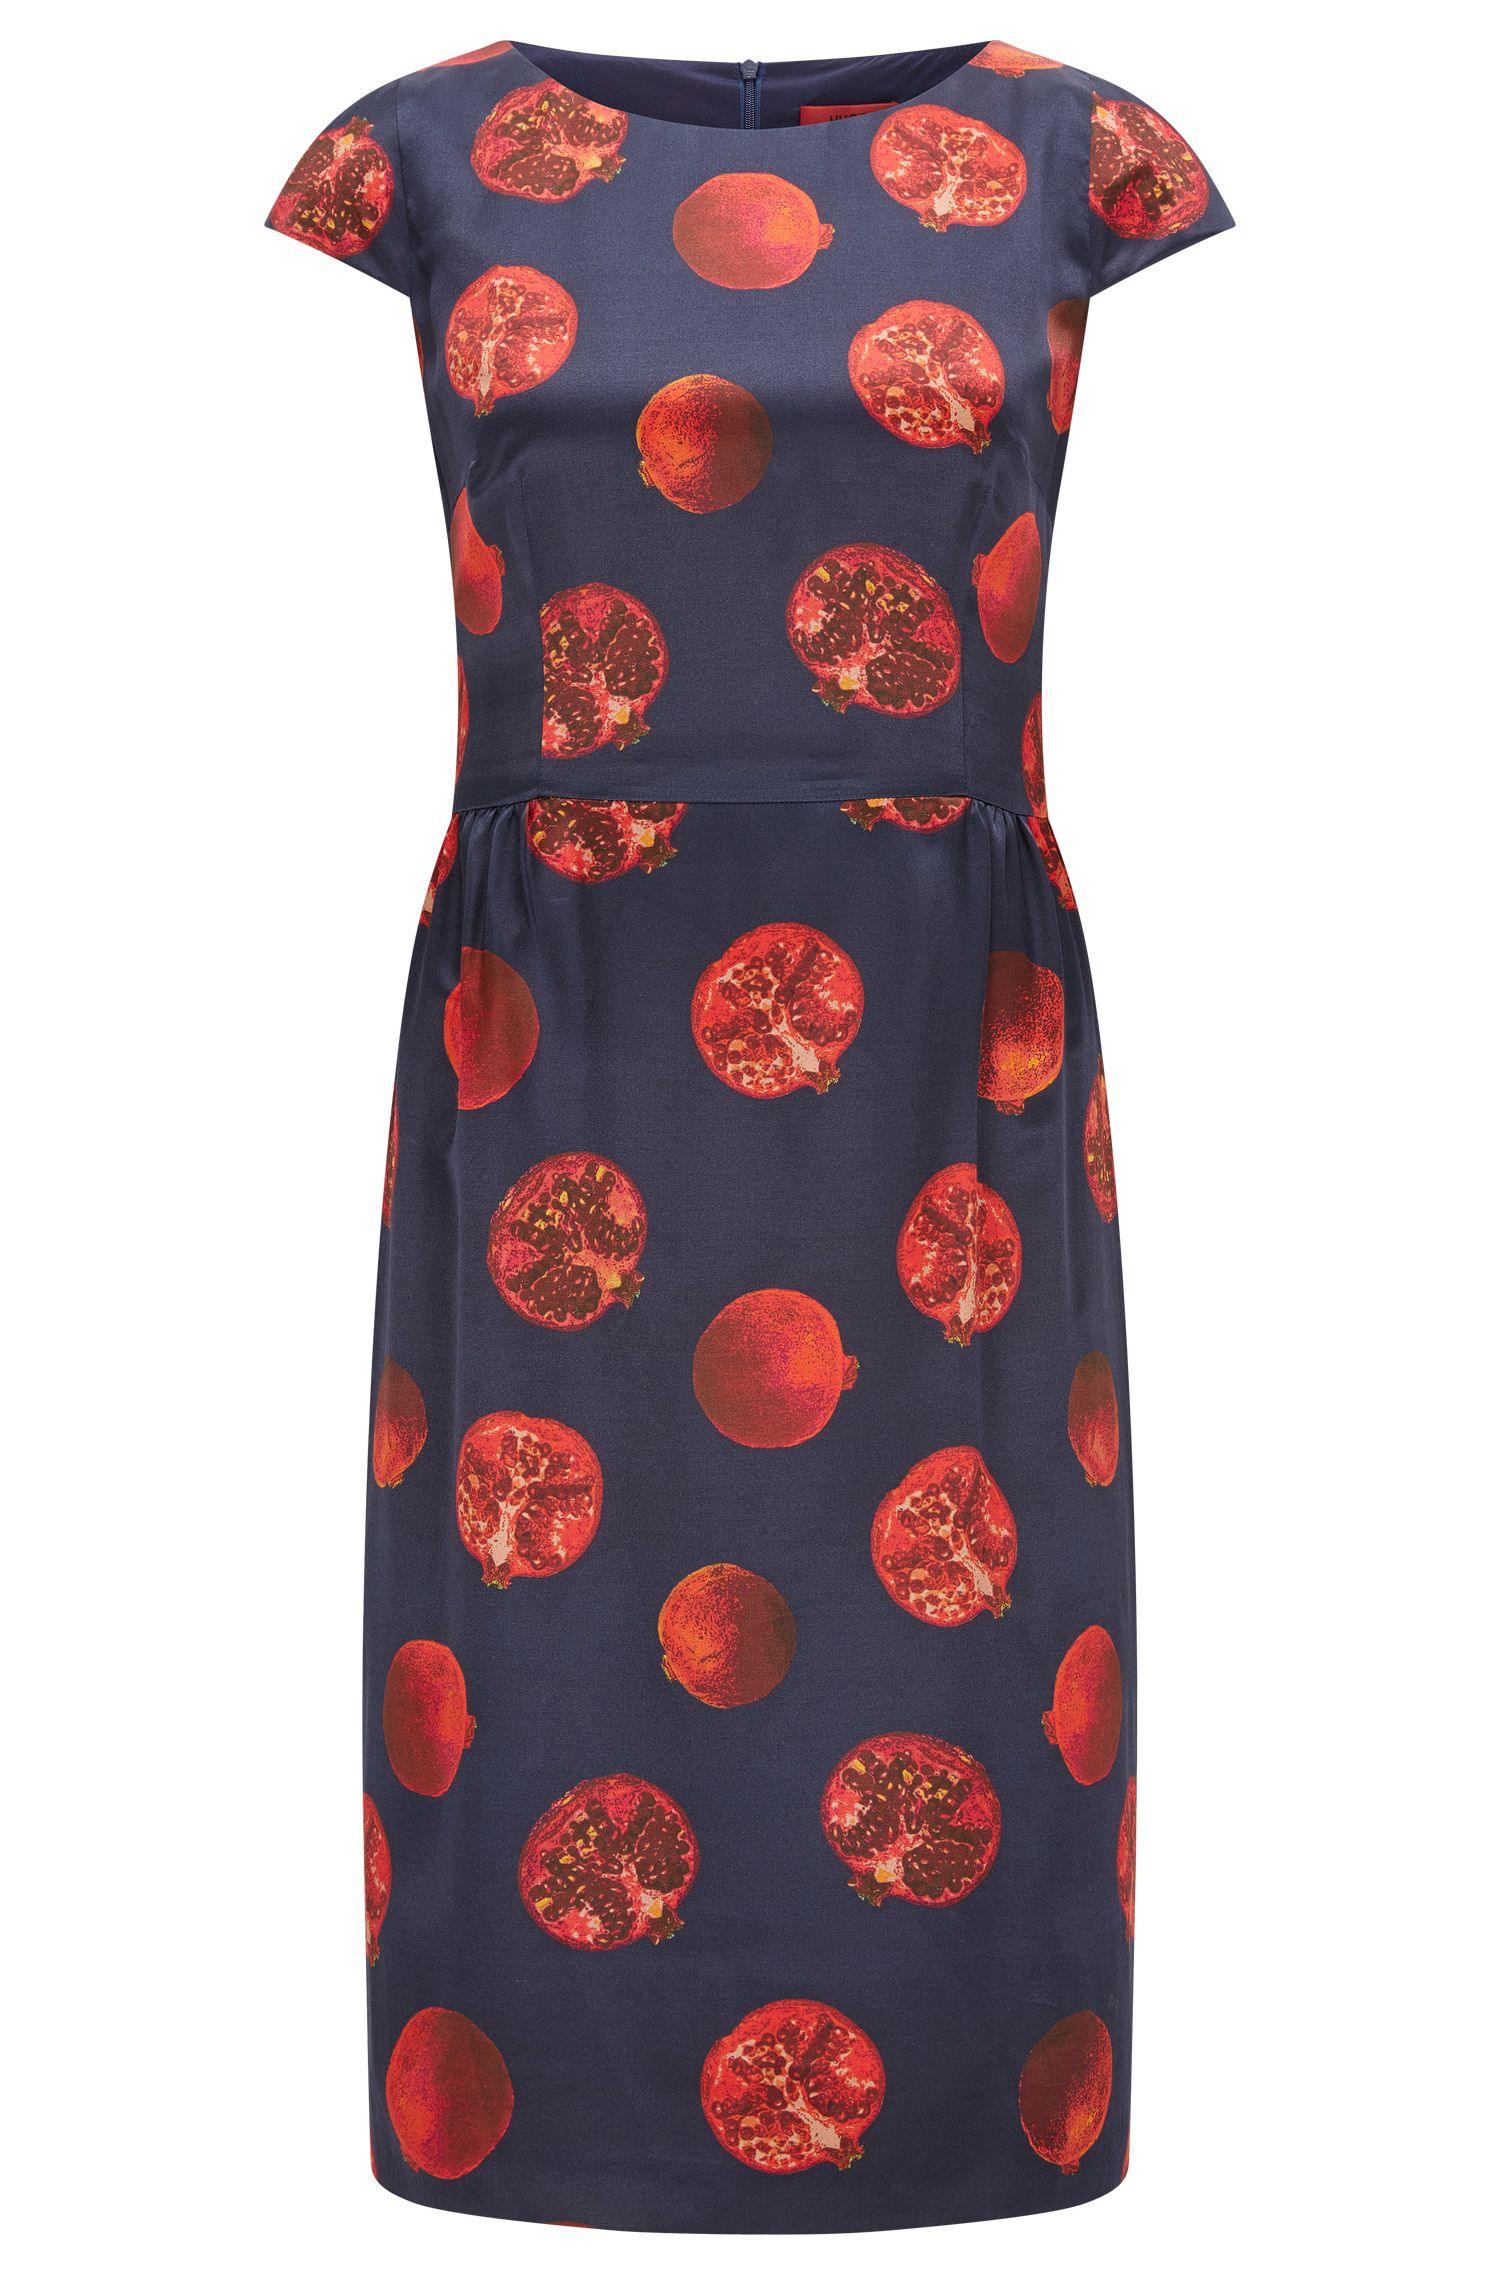 Regular-fit printed dress in fluid fabric